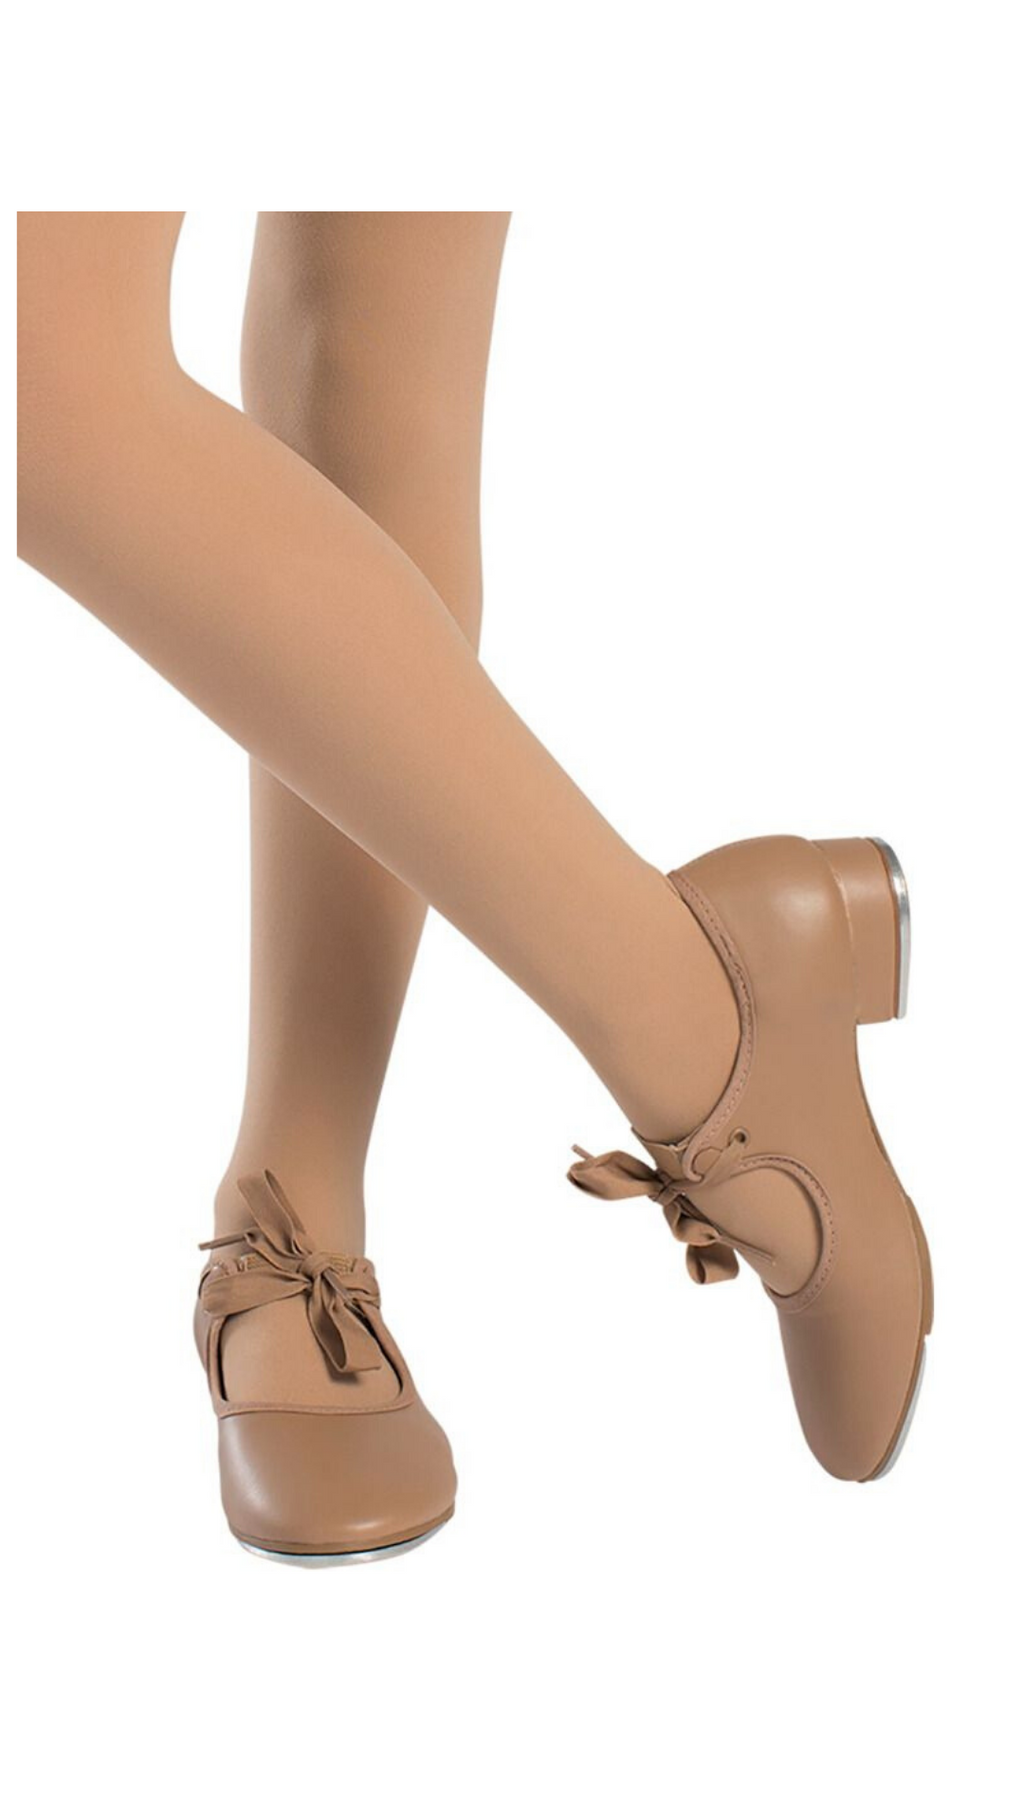 Val Tie and Snap Tap Shoe TA36-Adult (Caramel & Black)